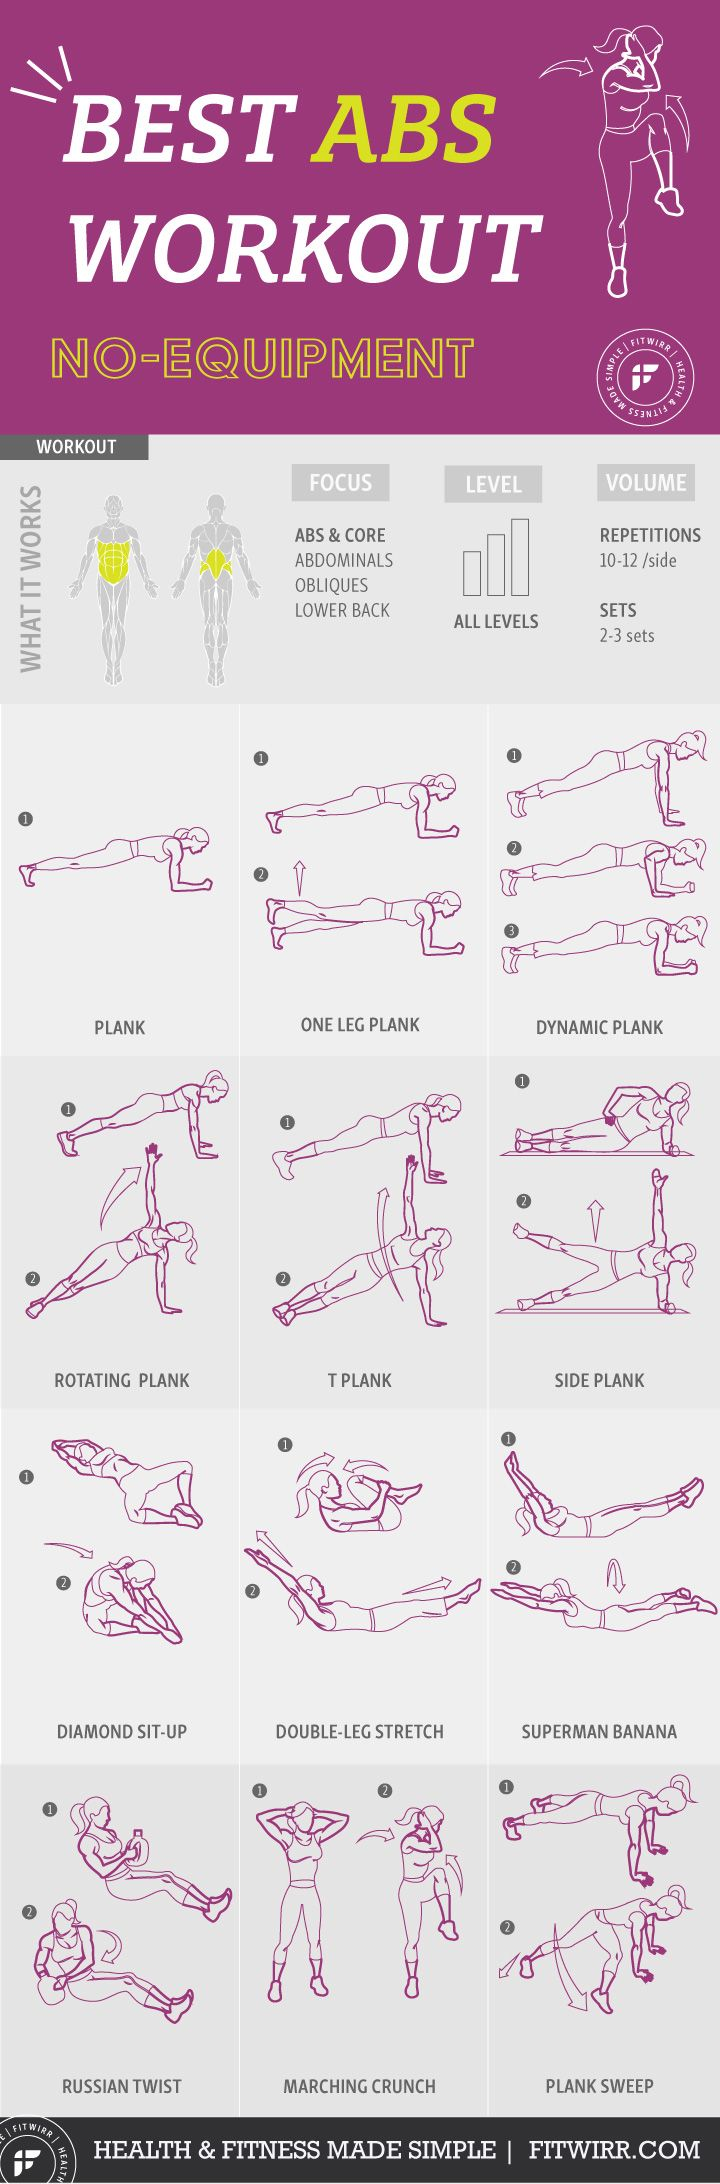 Abs workout for women